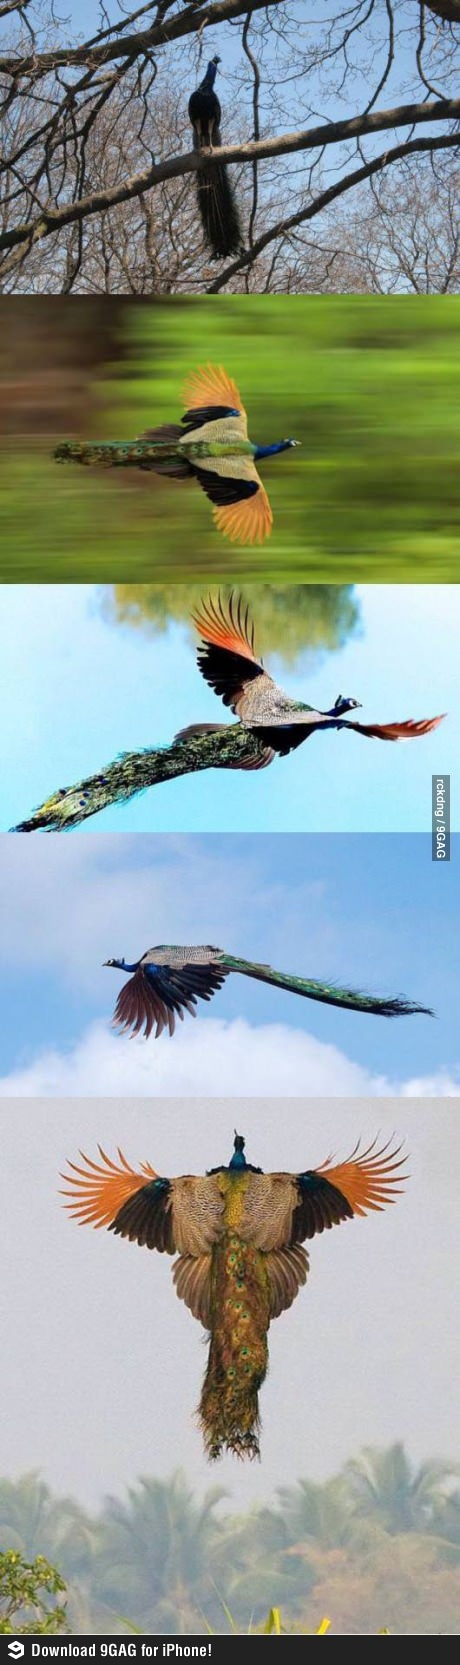 Best Everything Peacocks Images On Pinterest Peacocks - Flying peacocks look like mythical creatures